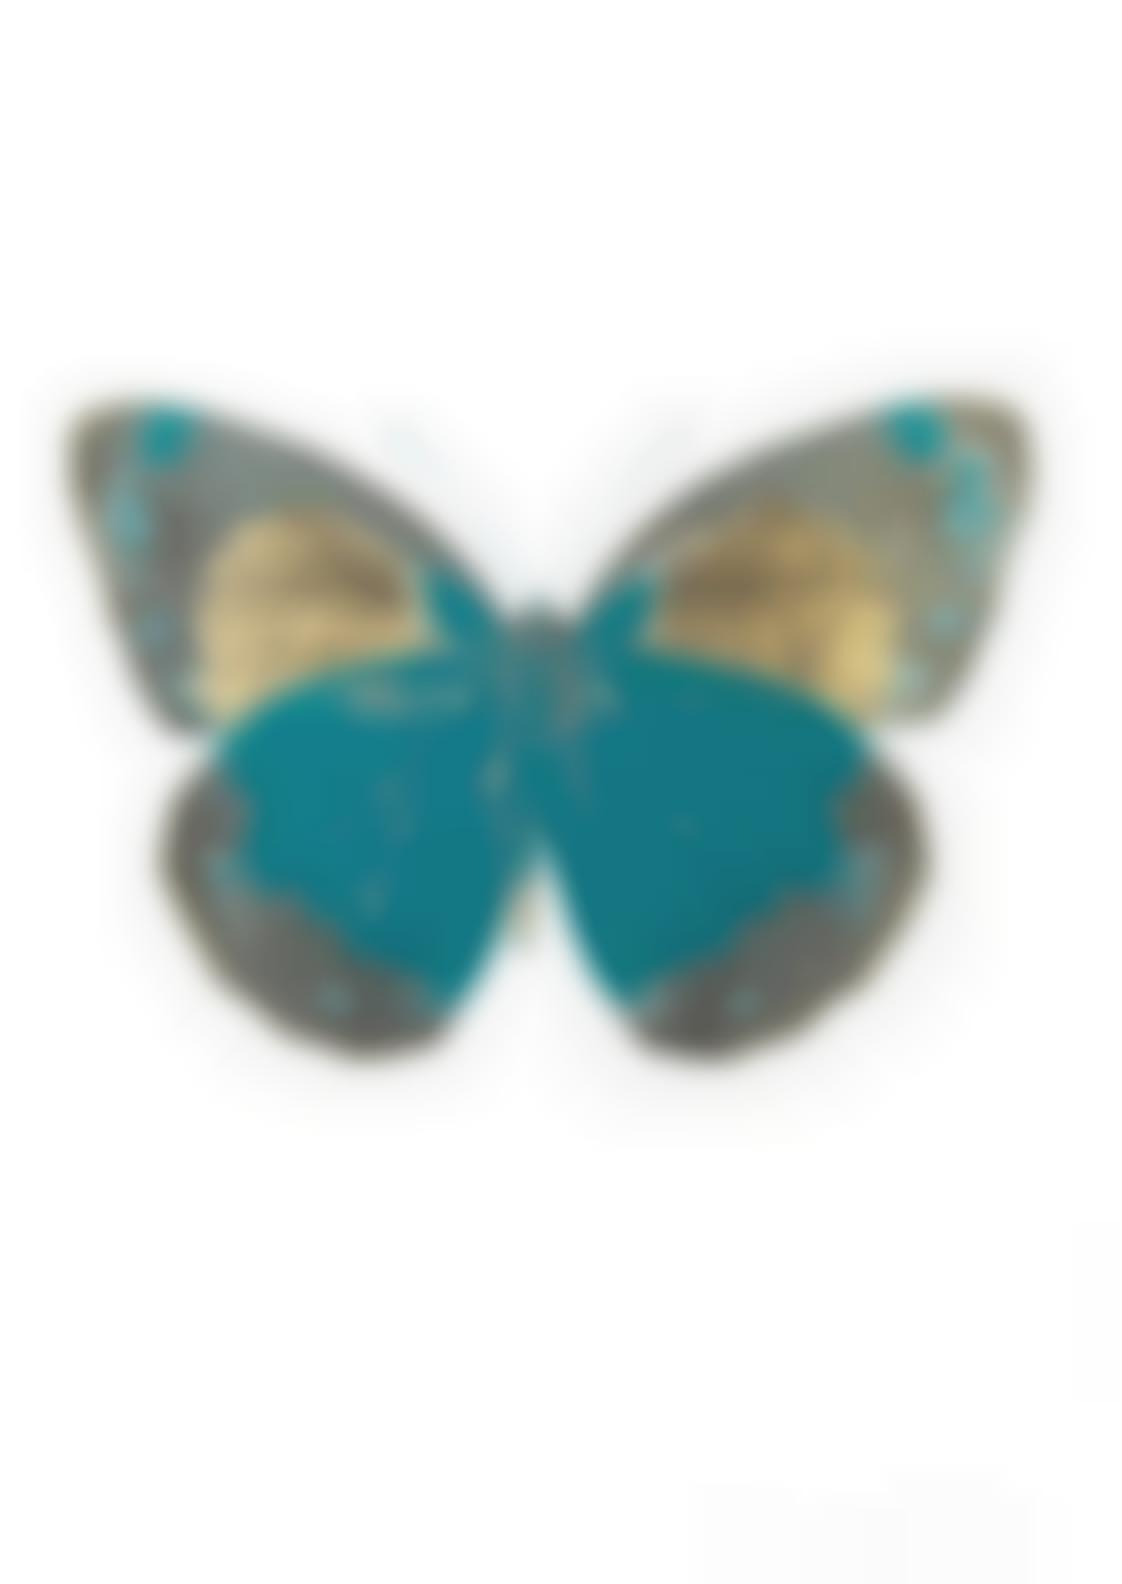 Damien Hirst-The Souls II - Cool Gold/Oriental Gold/Turquoise-2010